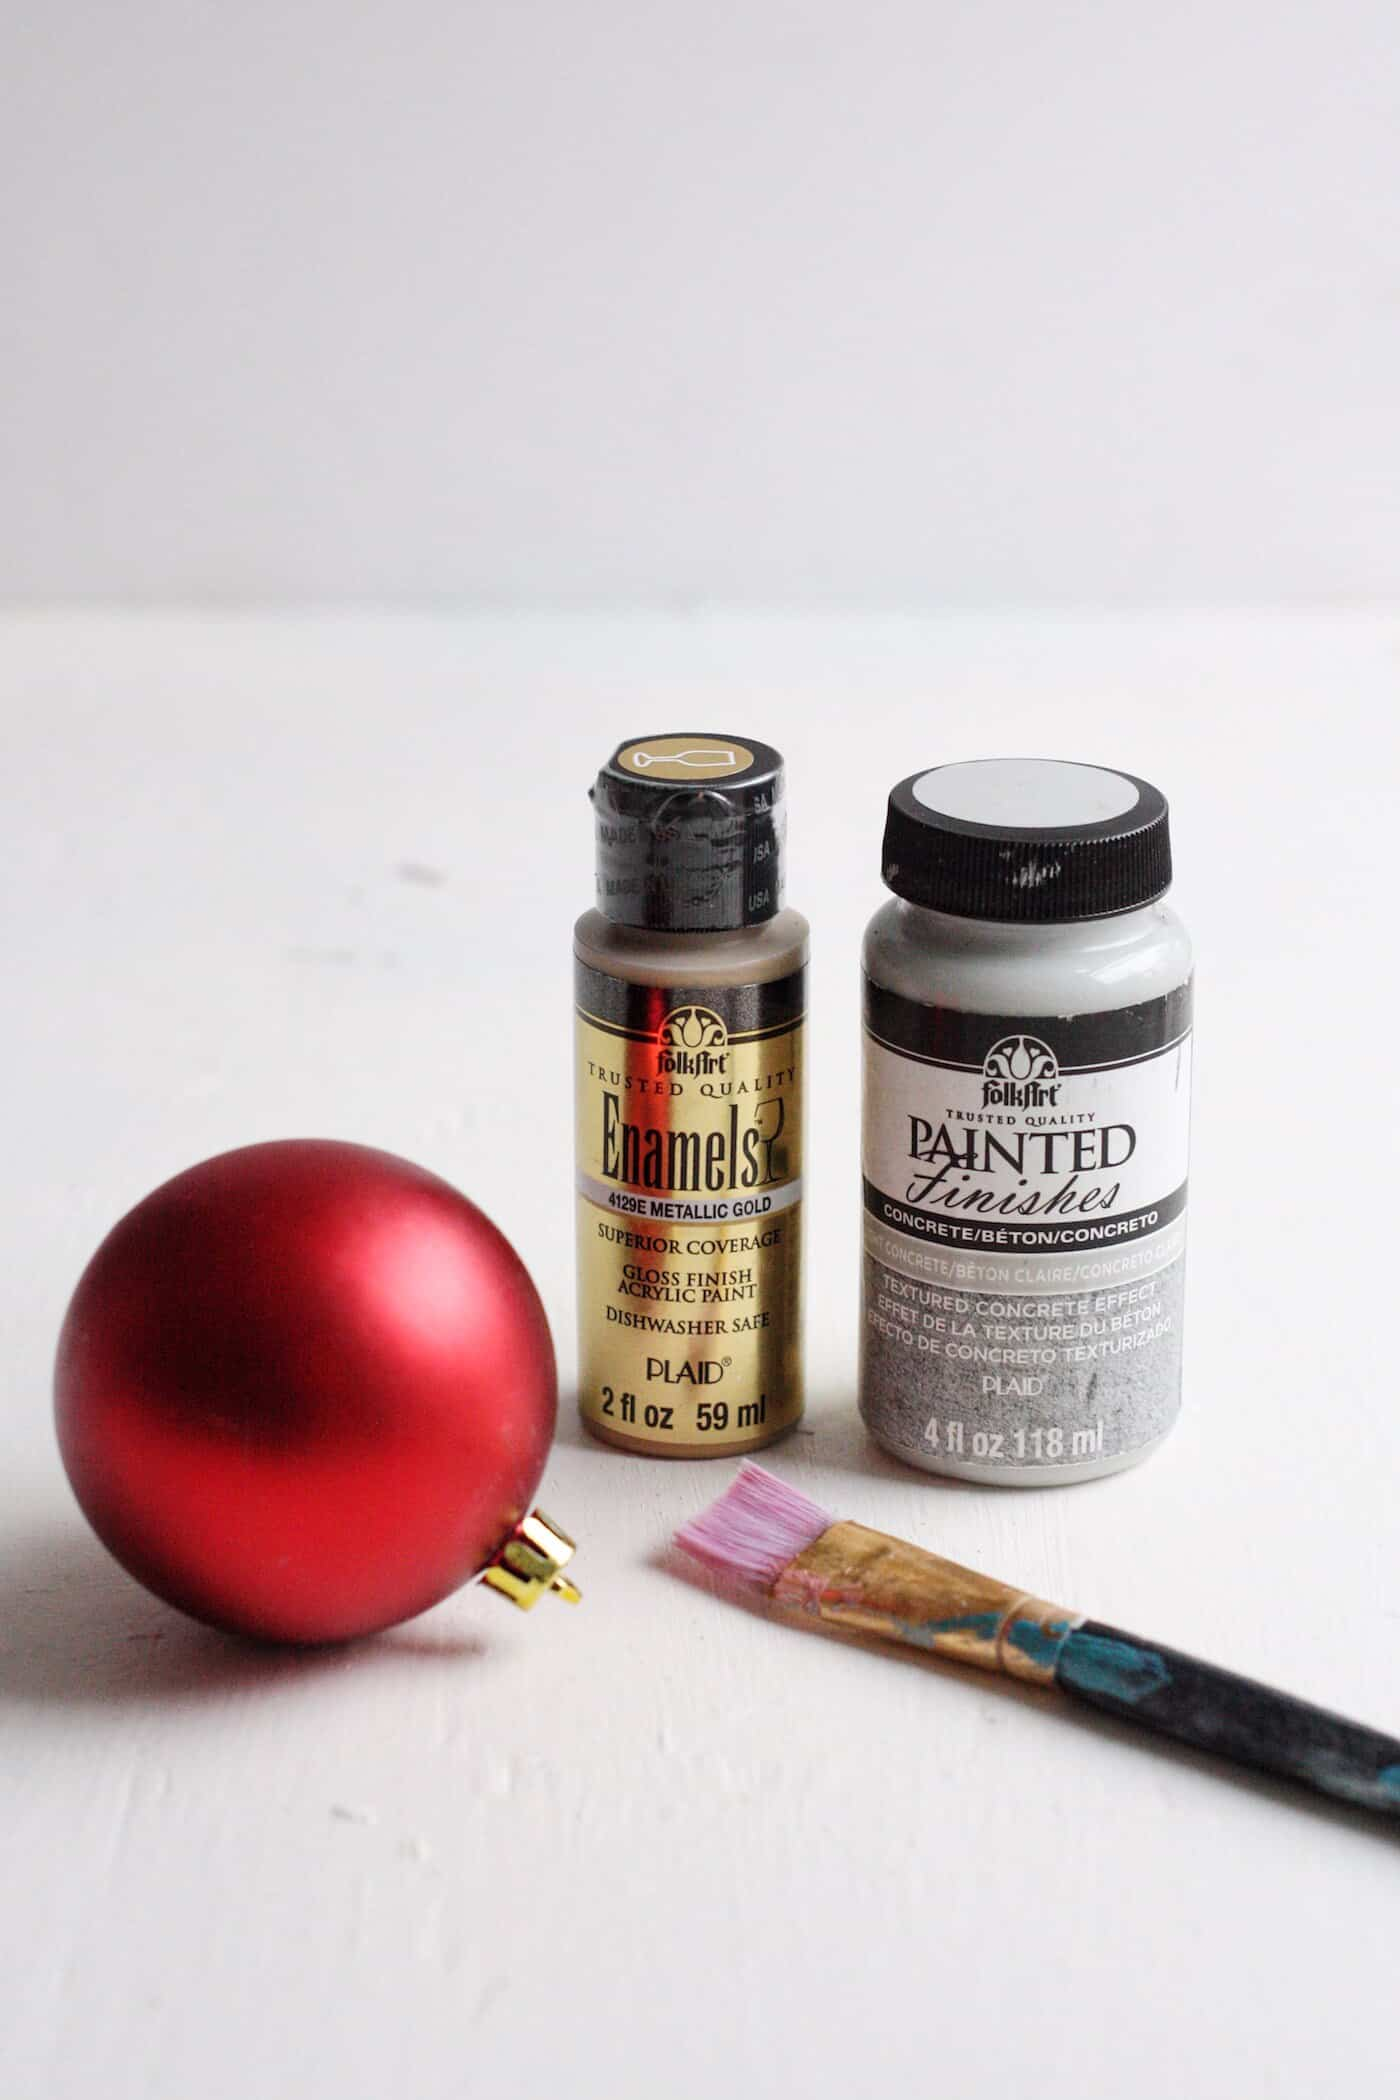 Red Christmas ball ornament, Enamel gold paint, and concrete painted finish with a paint brush